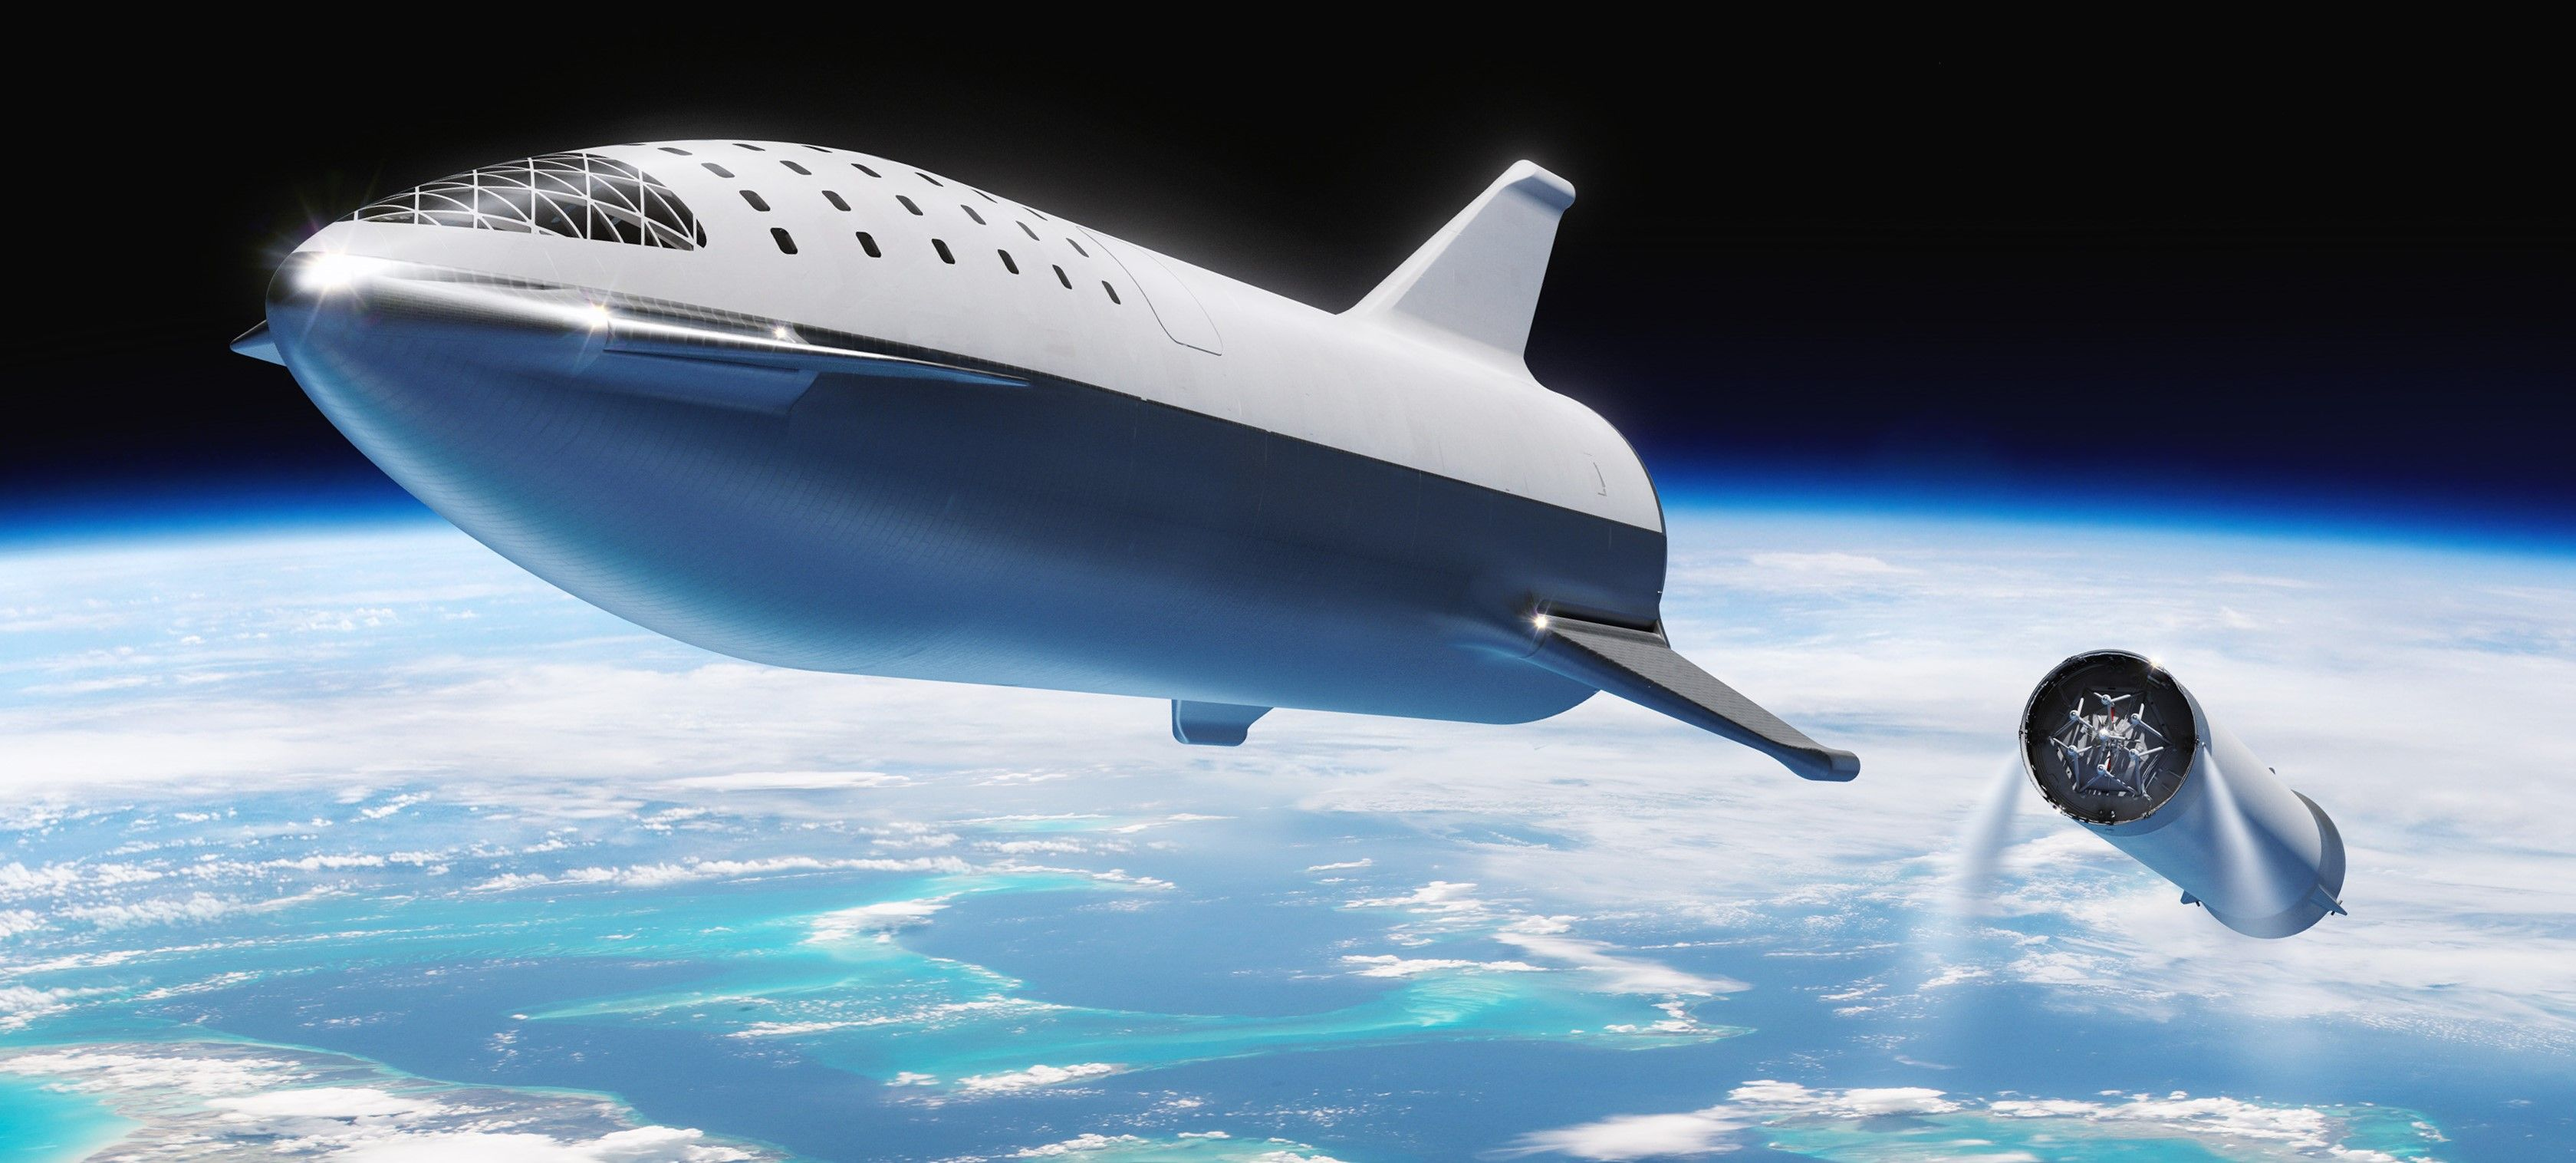 bfr-2018-spaceship-and-booster-sep-spacex-crop-1541704939